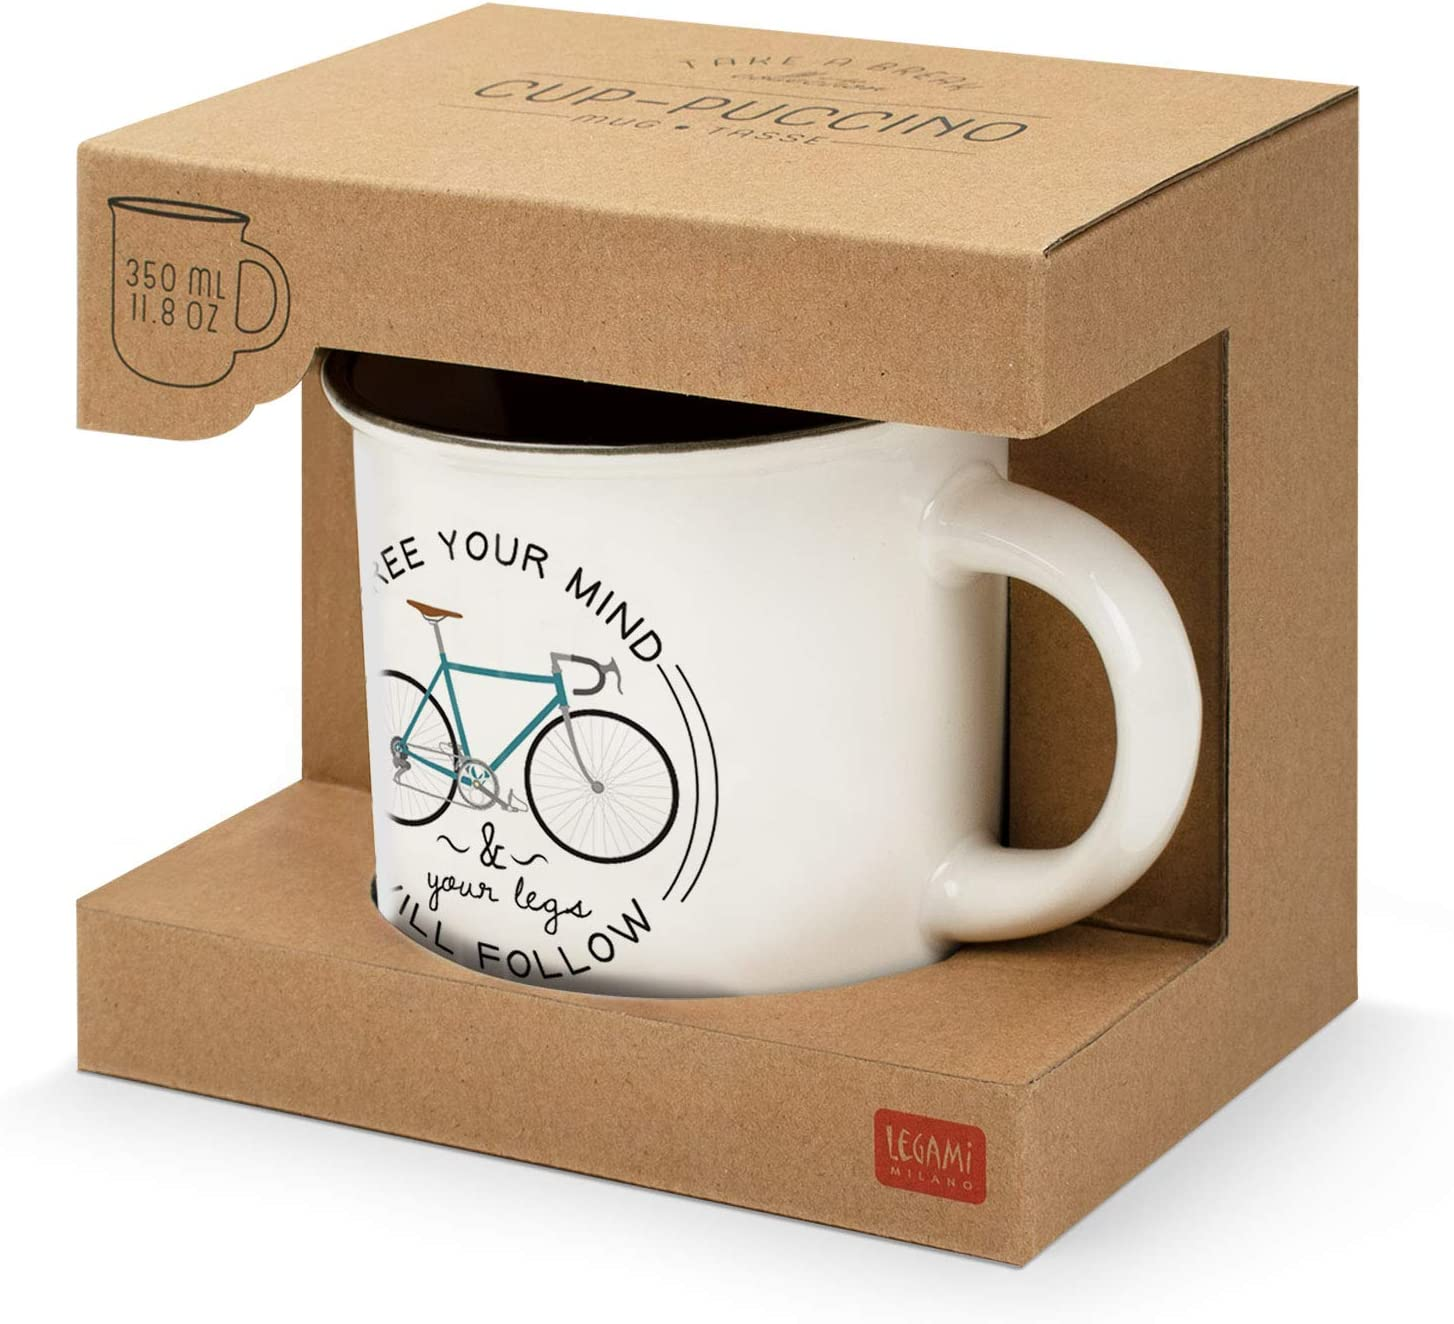 Legami CUP0024 Tasses porcelaine Bone China Bike